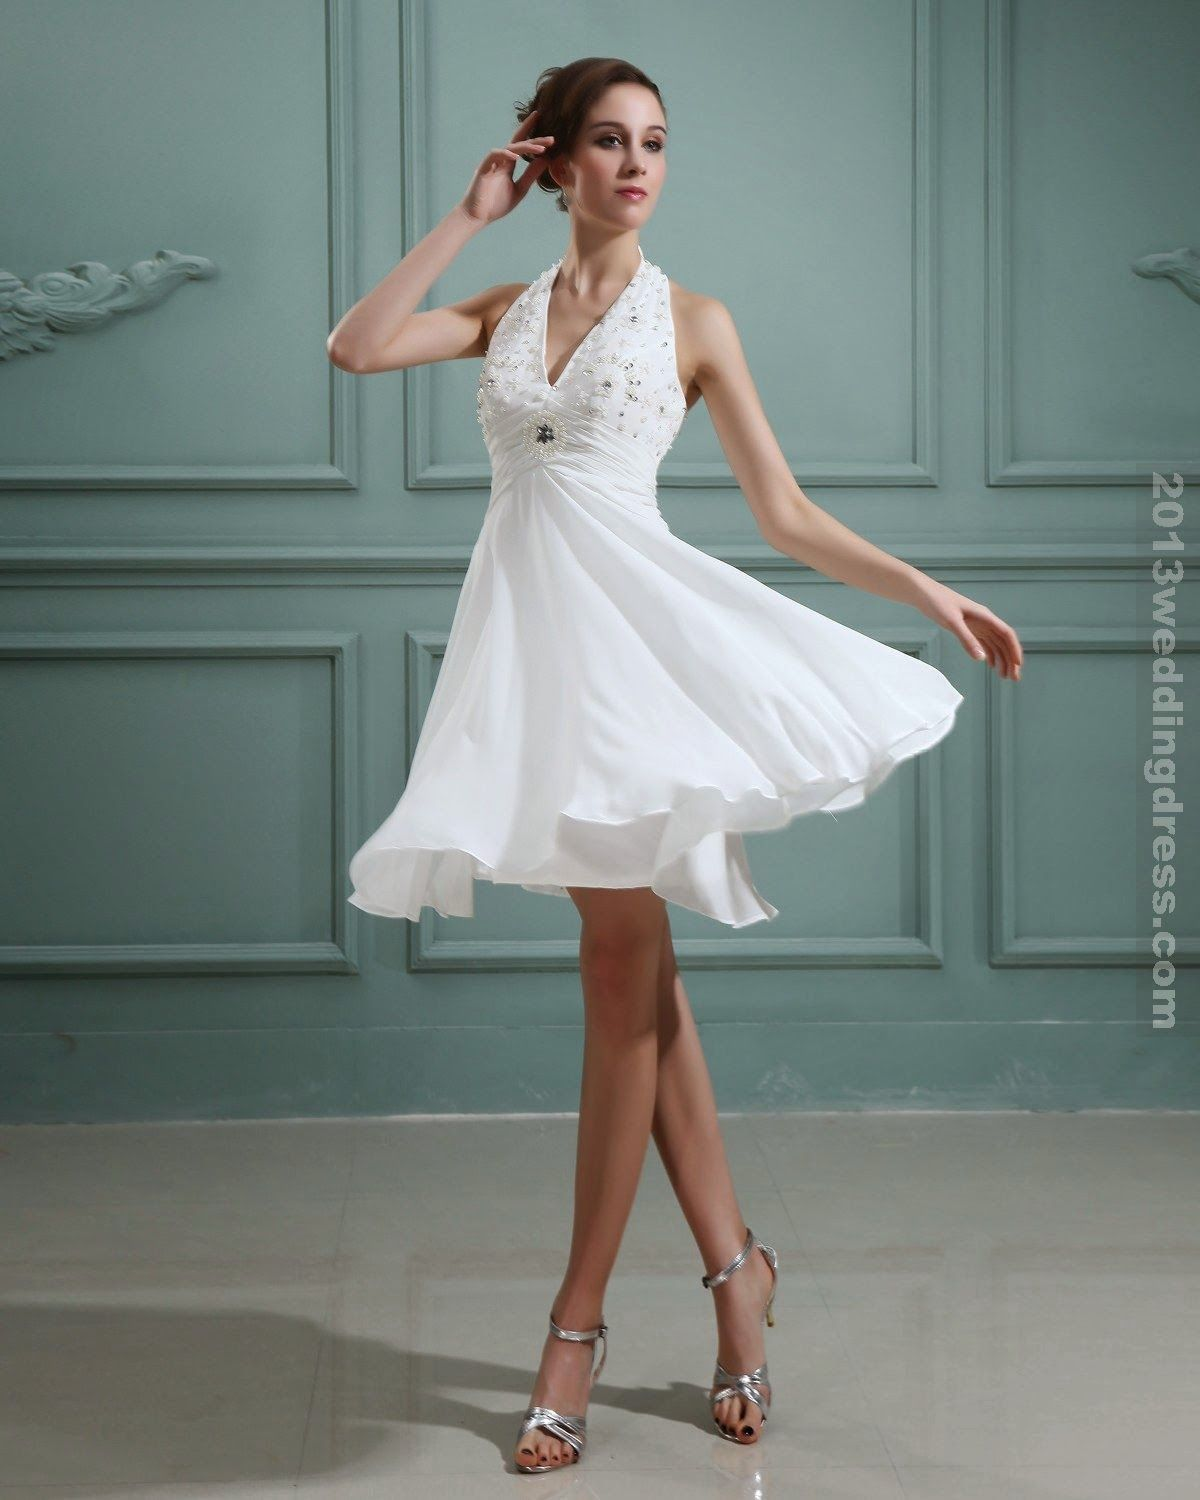 Short white dresses for wedding reception  Pin by Hossam Amin on All About Wedding  Pinterest  Italian